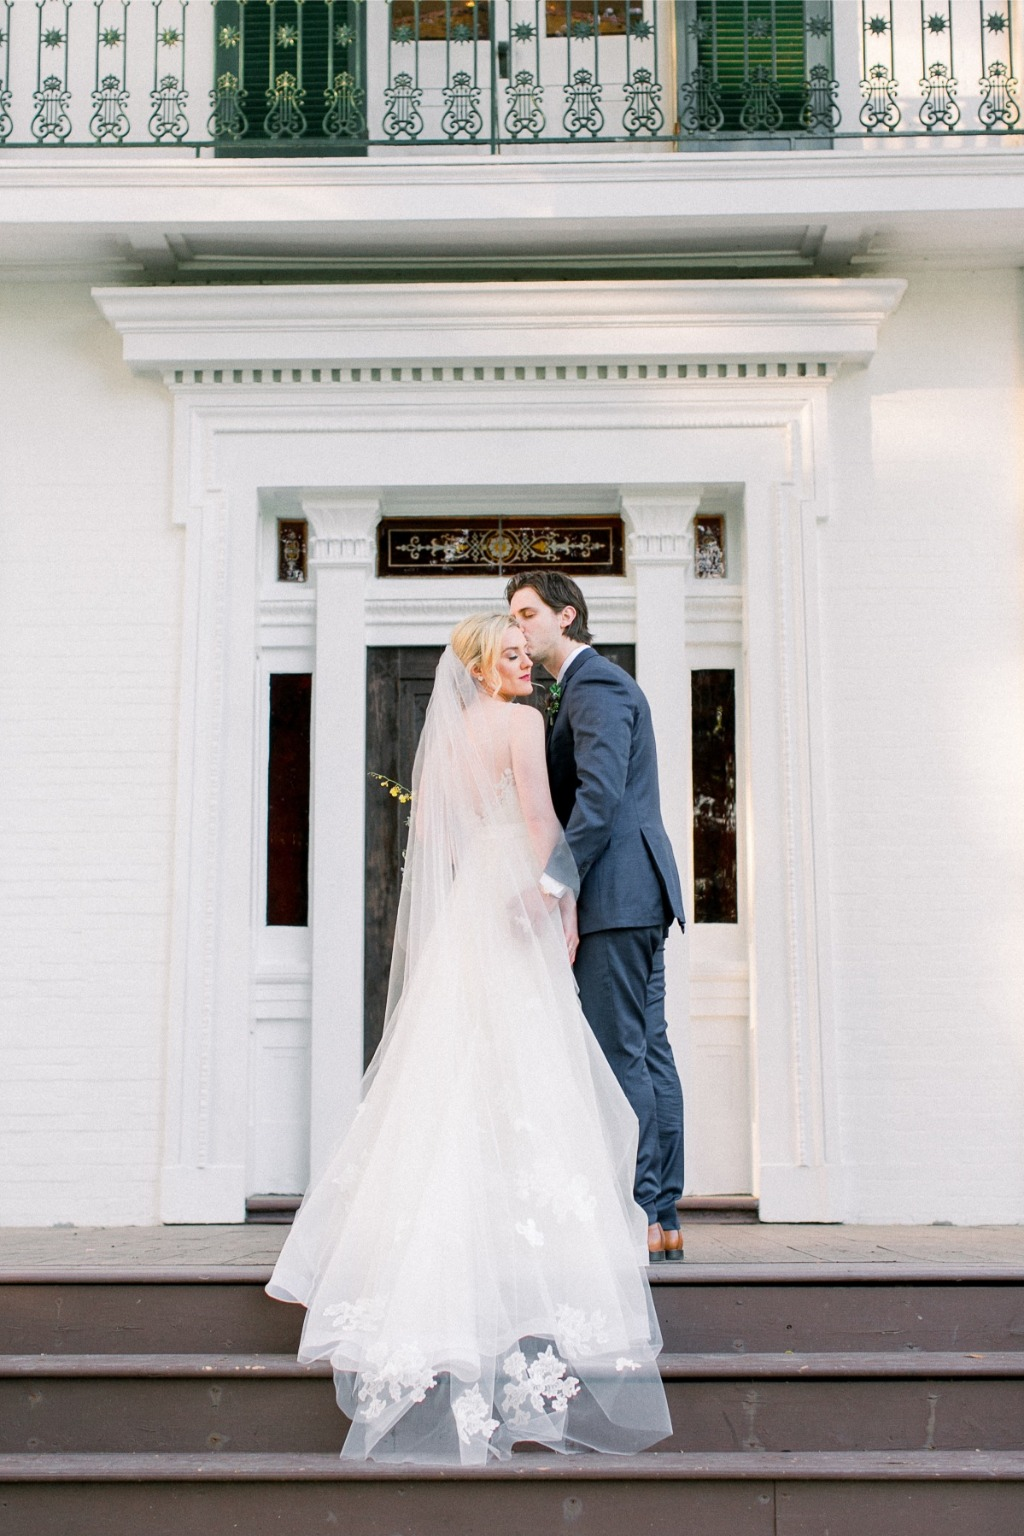 MARY LU + TROY'S NASHVILLE WEDDING